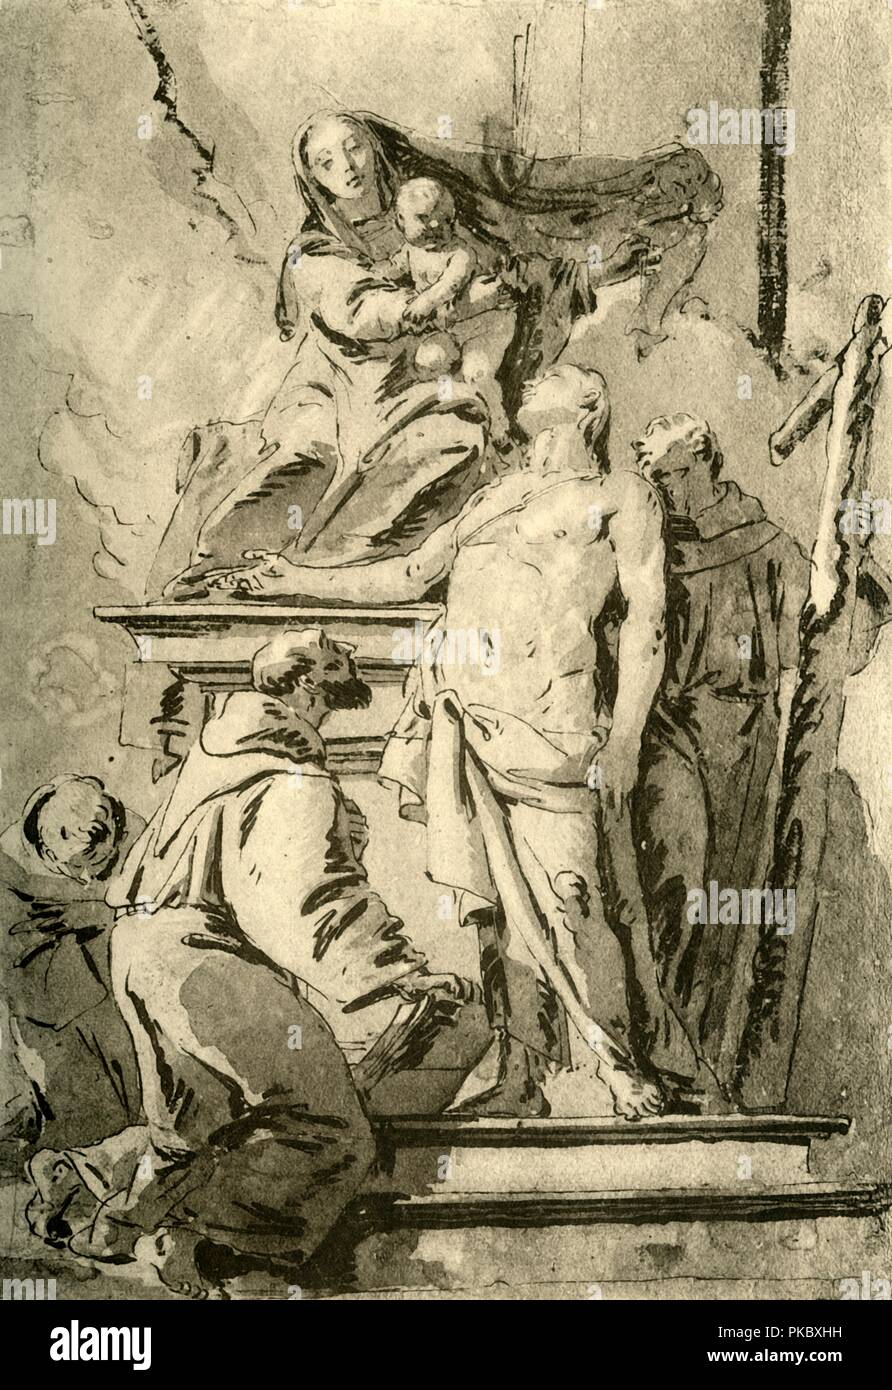 'Madonna enthroned with Saints', mid 18th century, (1928). 'Madonna enthroned with S. Sebastian and three Franciscan Saints', pen with wash on paper. At one time known to have been in the collection of the Kupferstichkabinett, Berlin, Germany. Italian Venetian painter and printmaker Giovanni Battista Tiepolo (1696-1770), worked not only in Italy, but also in Germany and Spain. He was commissioned to carry out frescoes in churches and palaces, and was elected President of the Academy of Padua. As well as his large-scale majestic works, he also produced etchings and oil paintings, and is widely  - Stock Image